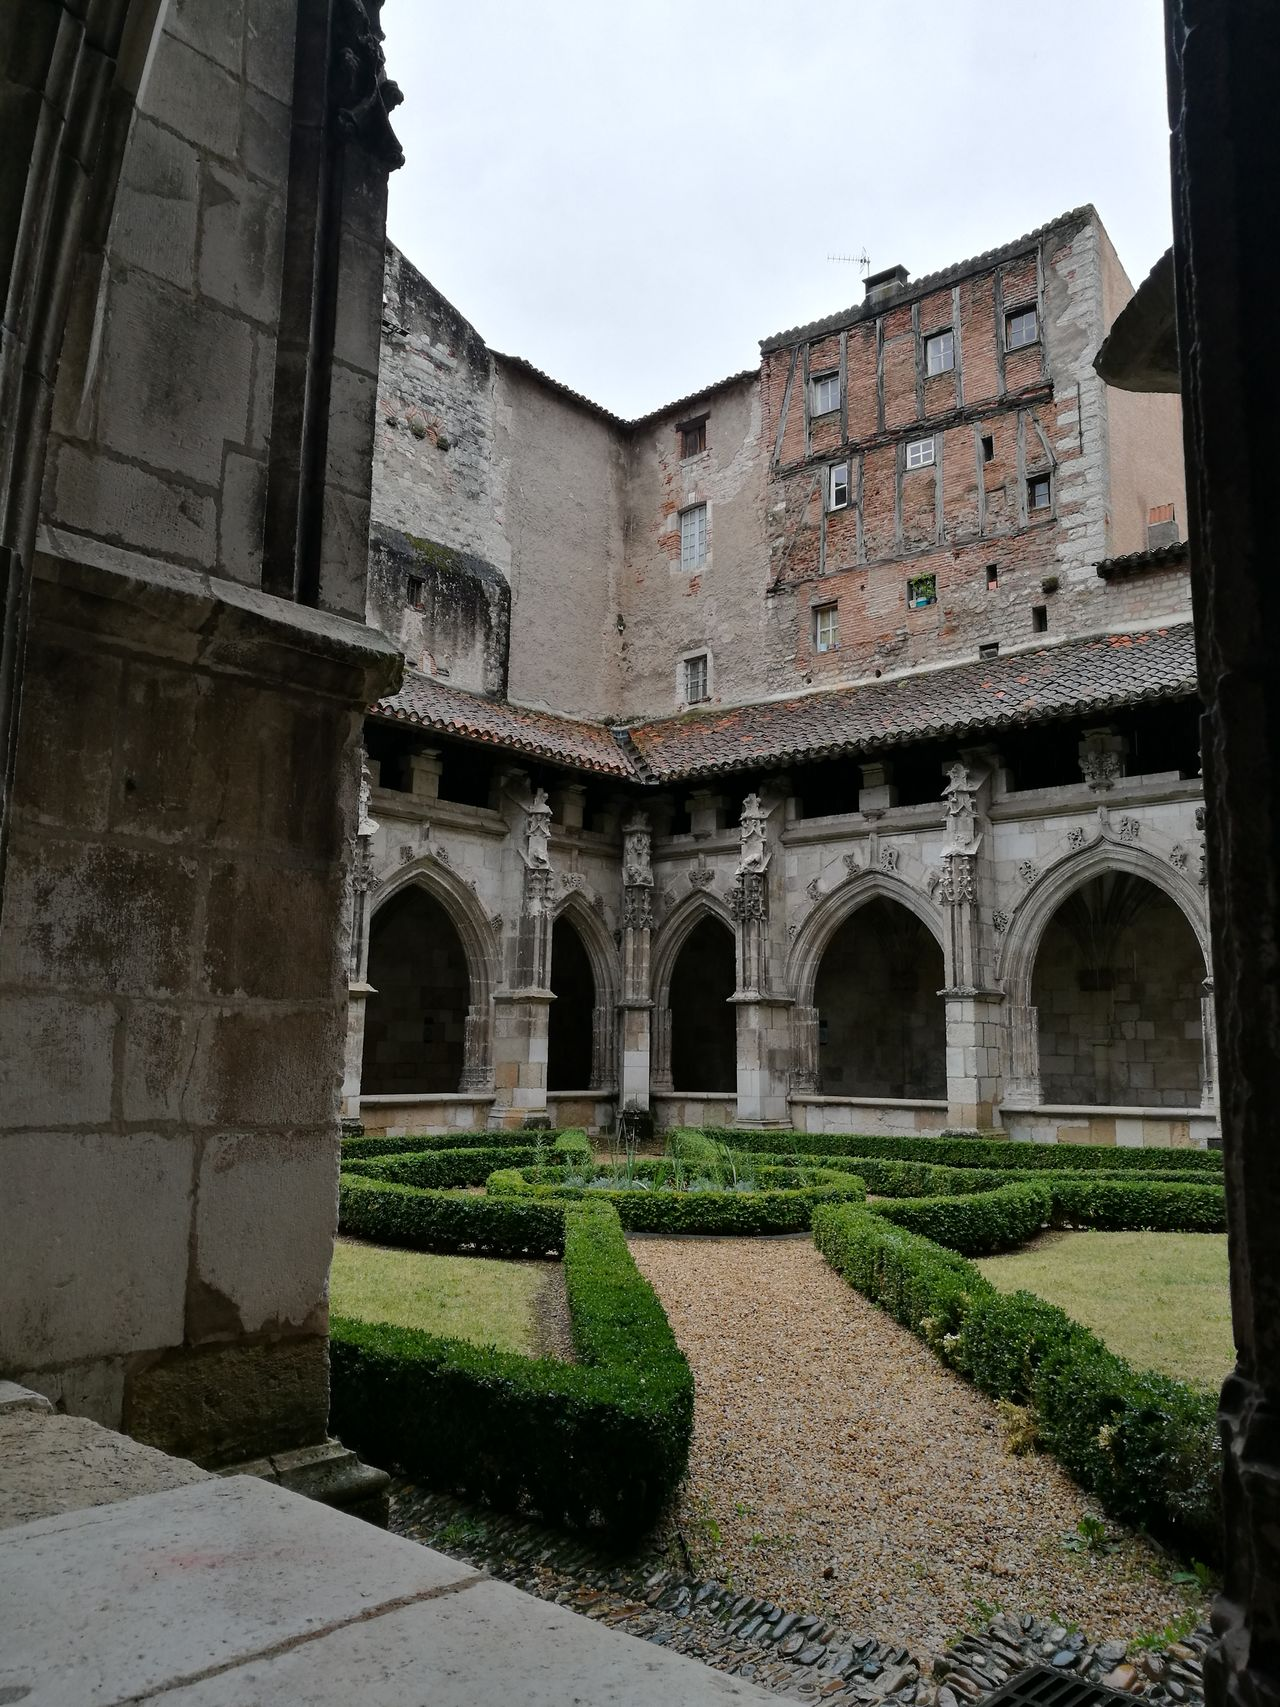 Architecture Outdoors Eglise Church Cloitre Cloister